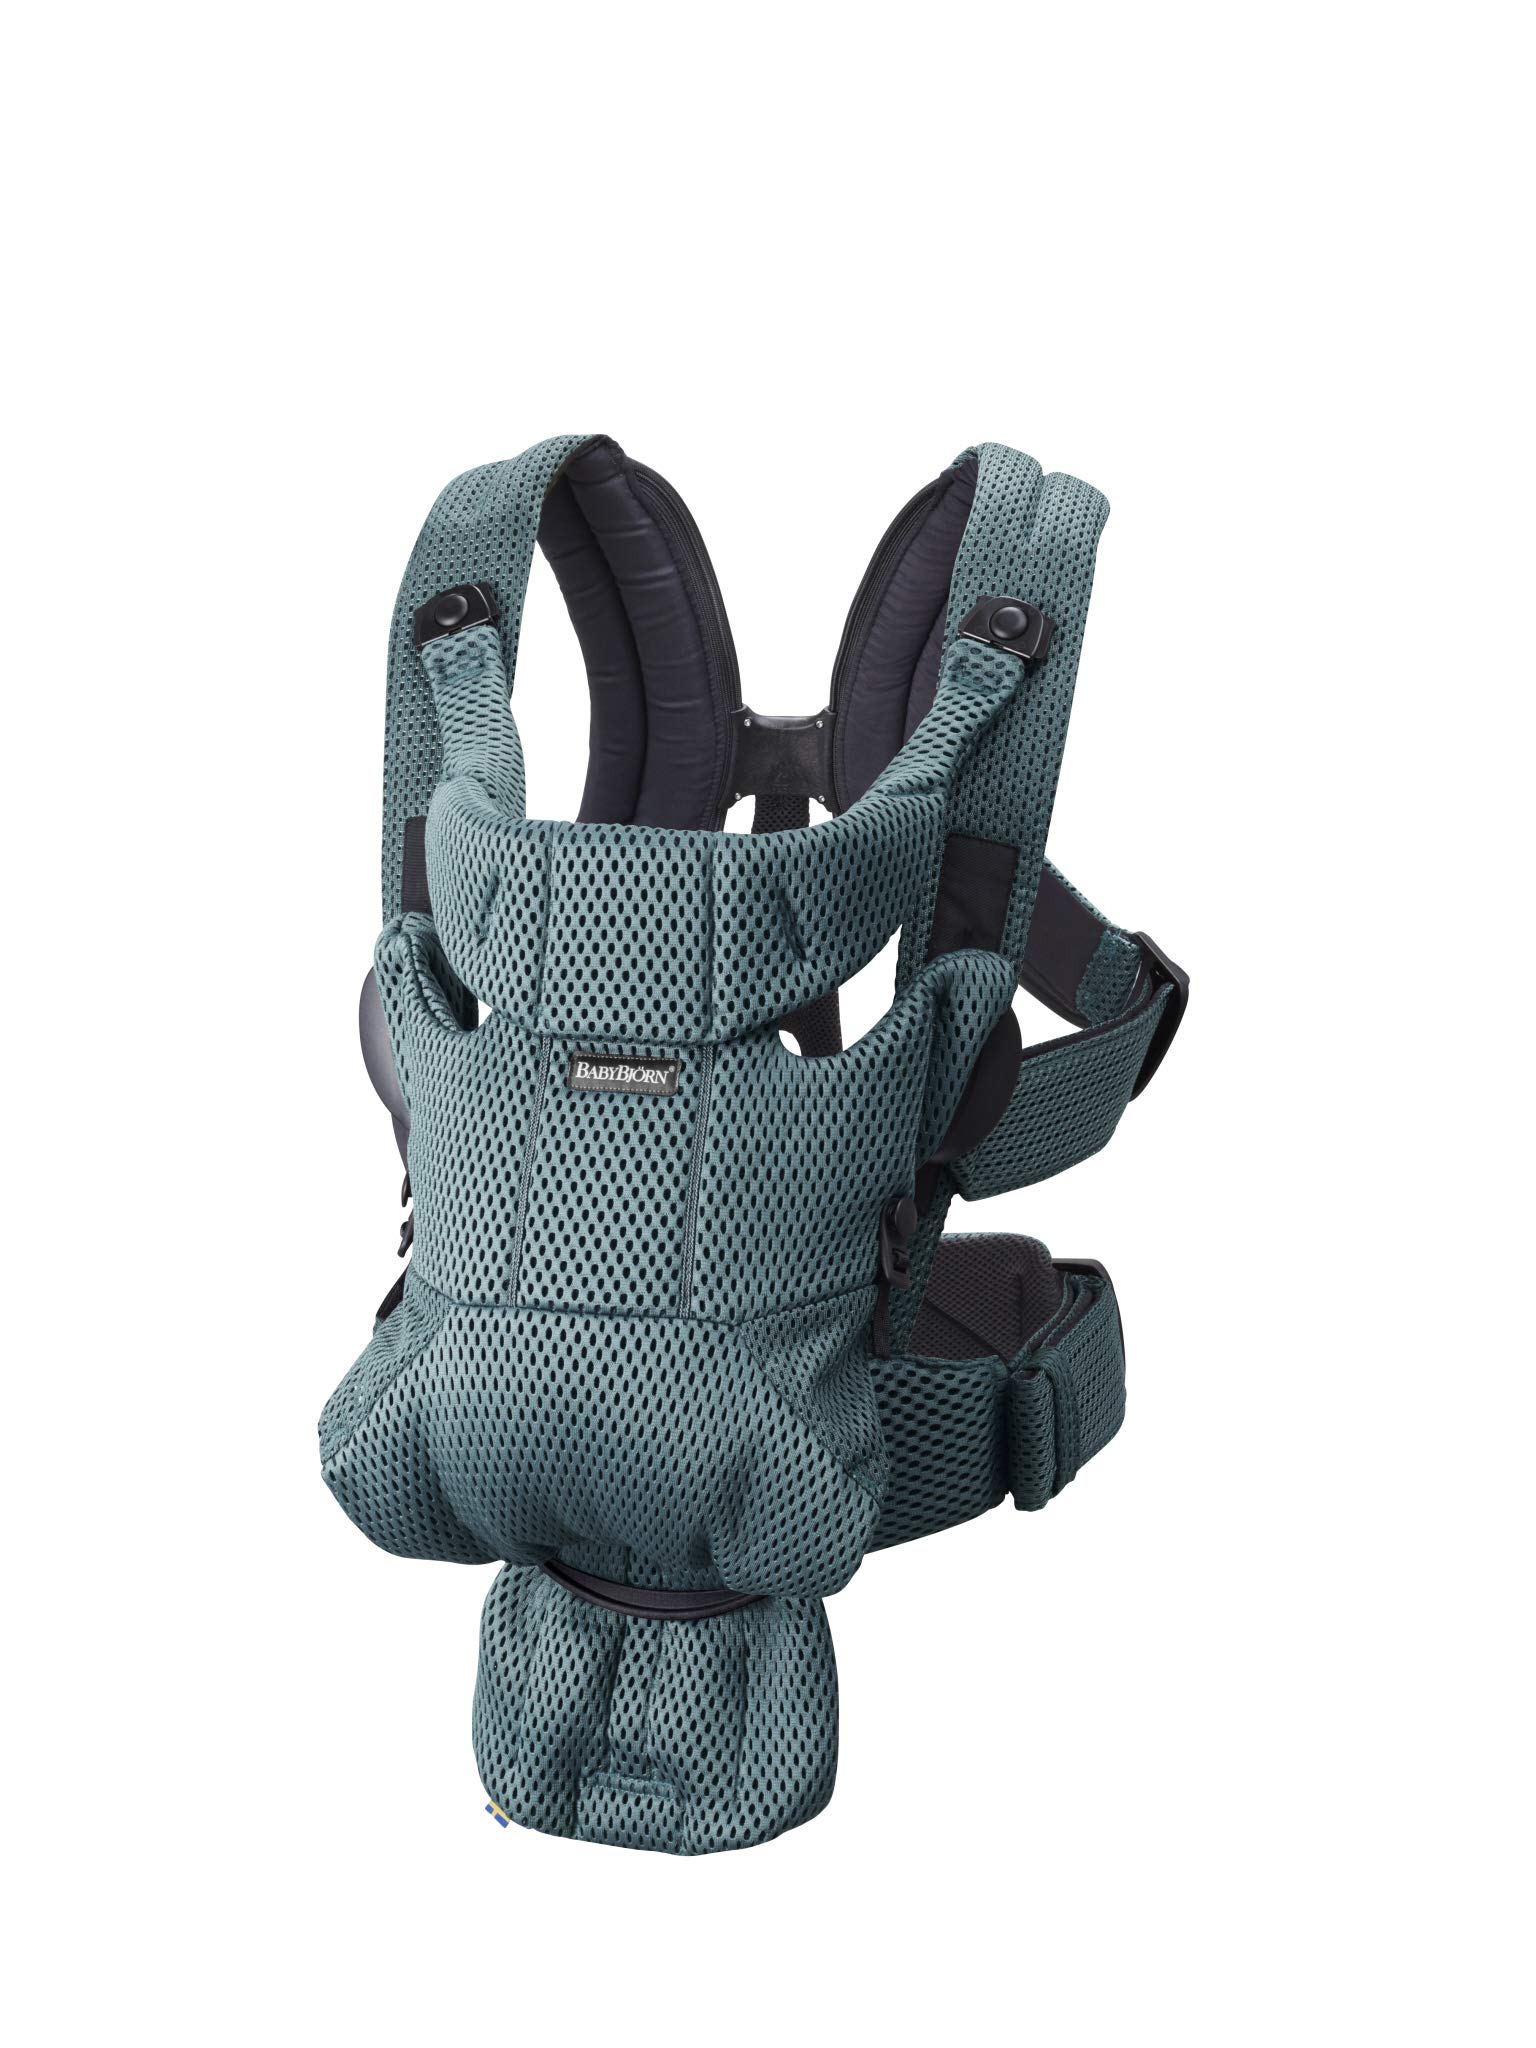 BABYBJÖRN Baby Carrier Move, 3D Mesh, Sage Green Baby Bjorn Excellent comfort with built-in back support and waist belt Easy to put on and take off Soft and airy design in cool 3D mesh 1